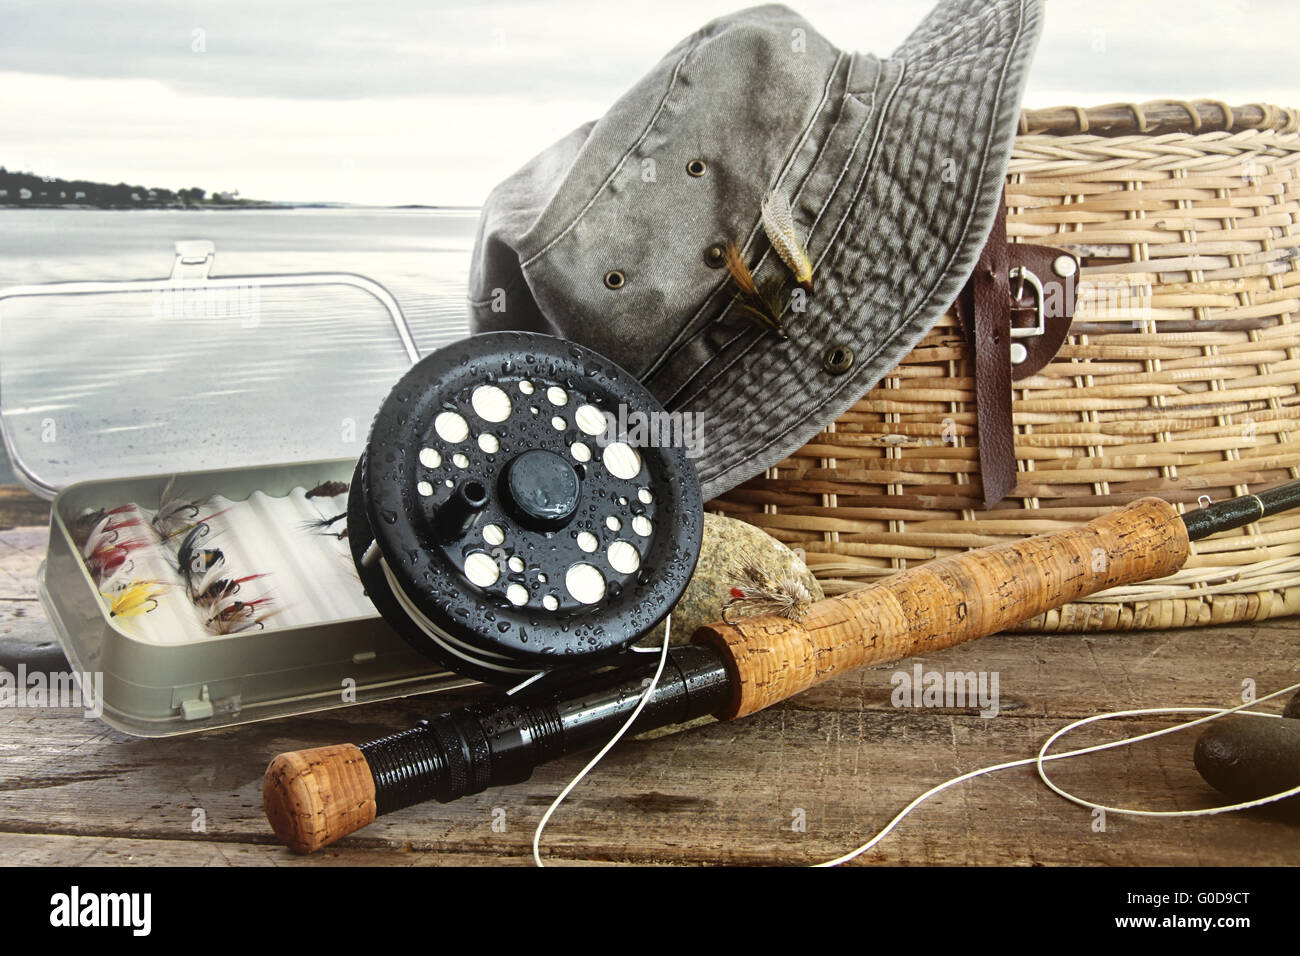 Bass fishing fly freshwater fishing stock photos bass for Fly fishing supplies near me